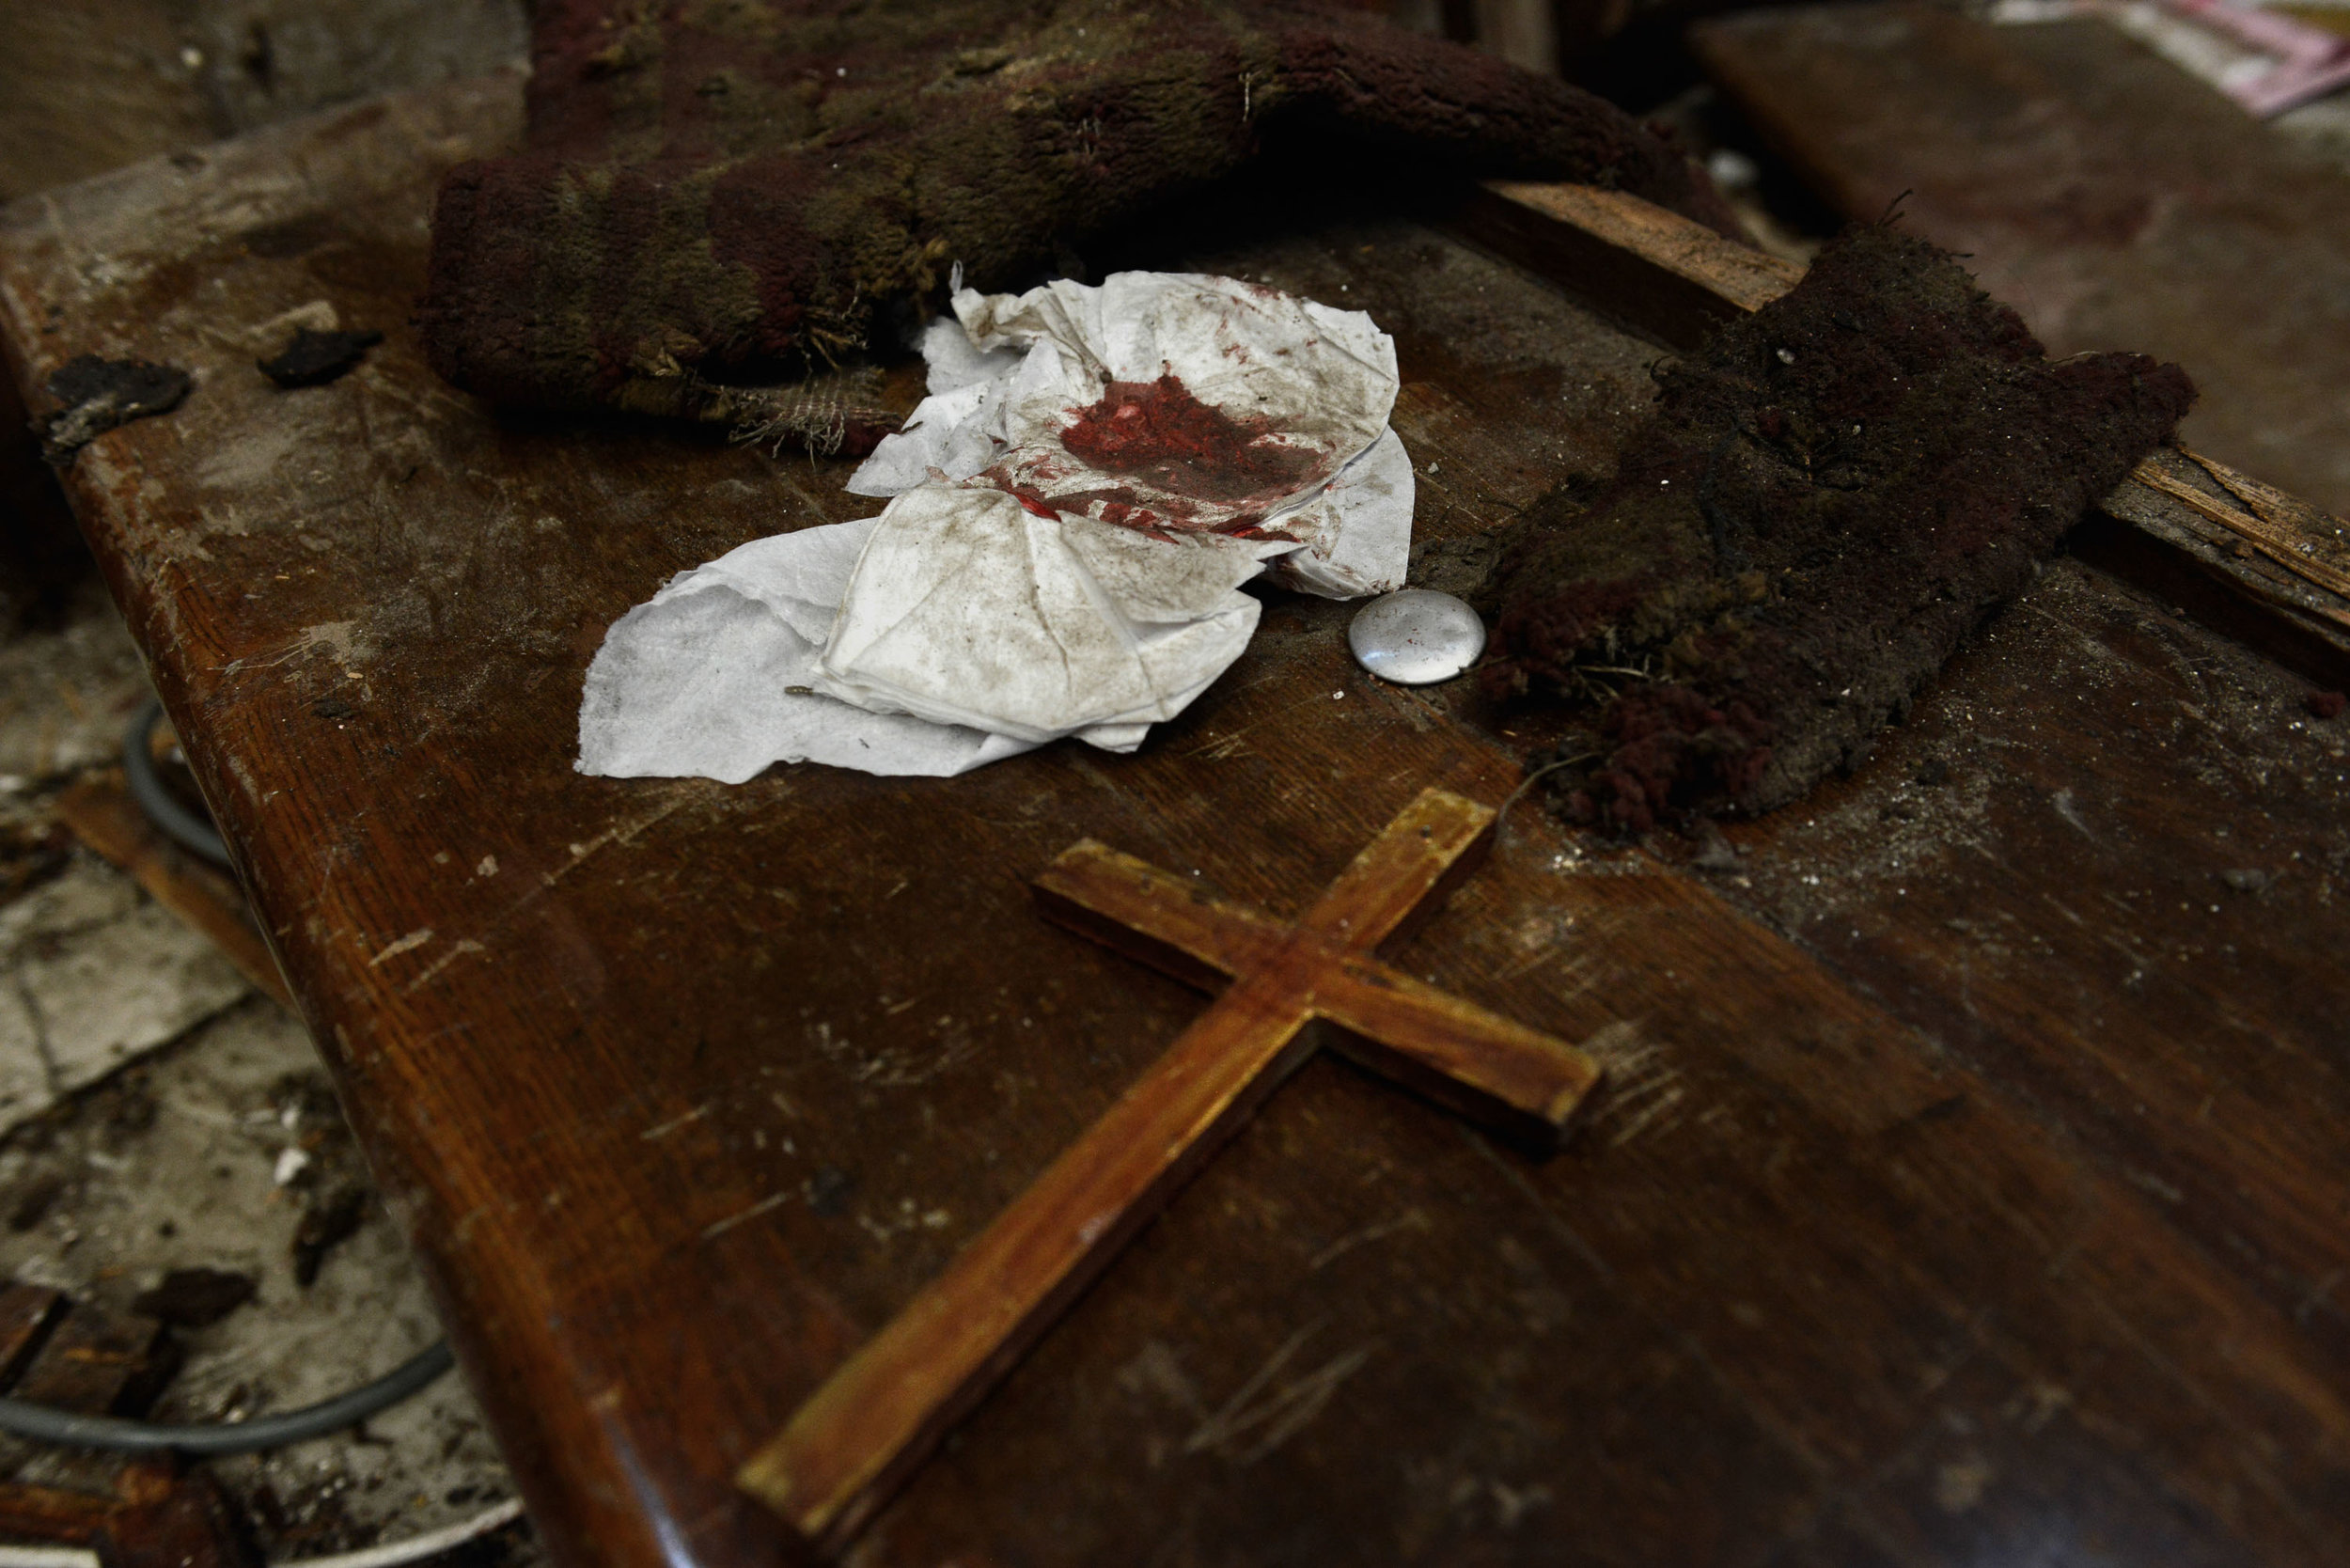 The aftermath at the chapel following the explosion. A bomb exploded in a chapel inside the Coptic Orthodox Cathedral of Abbasiya in Cairo, Egypt on December 11, 2016 leading to the death of 25 Christian Egyptians. Photo by Jonathan Rashad.